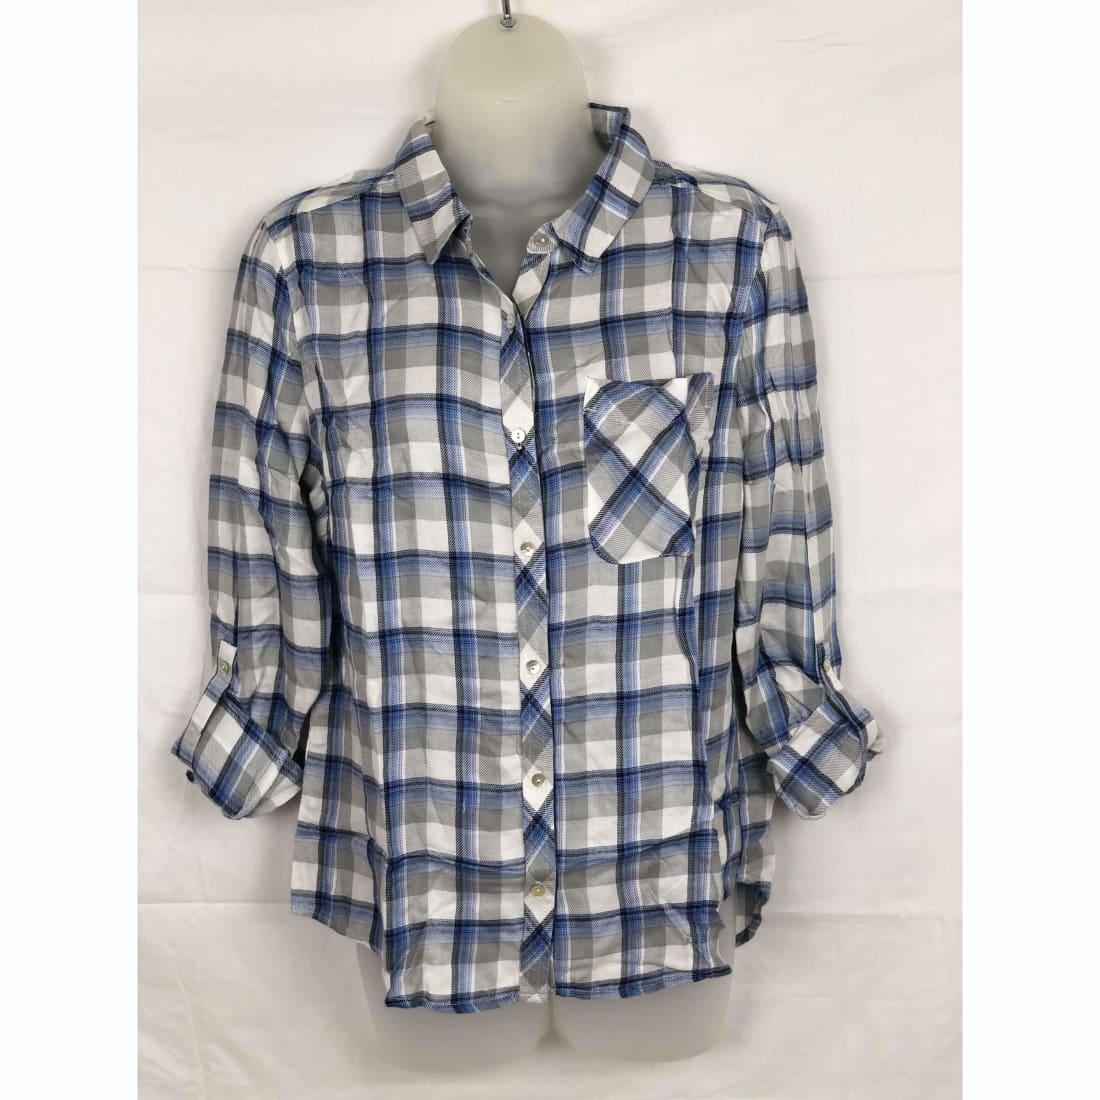 Michael Farrell Womens Button Front Roll Tab Plaid Shirt Variety S / Chambray Blue Tops & Blouses